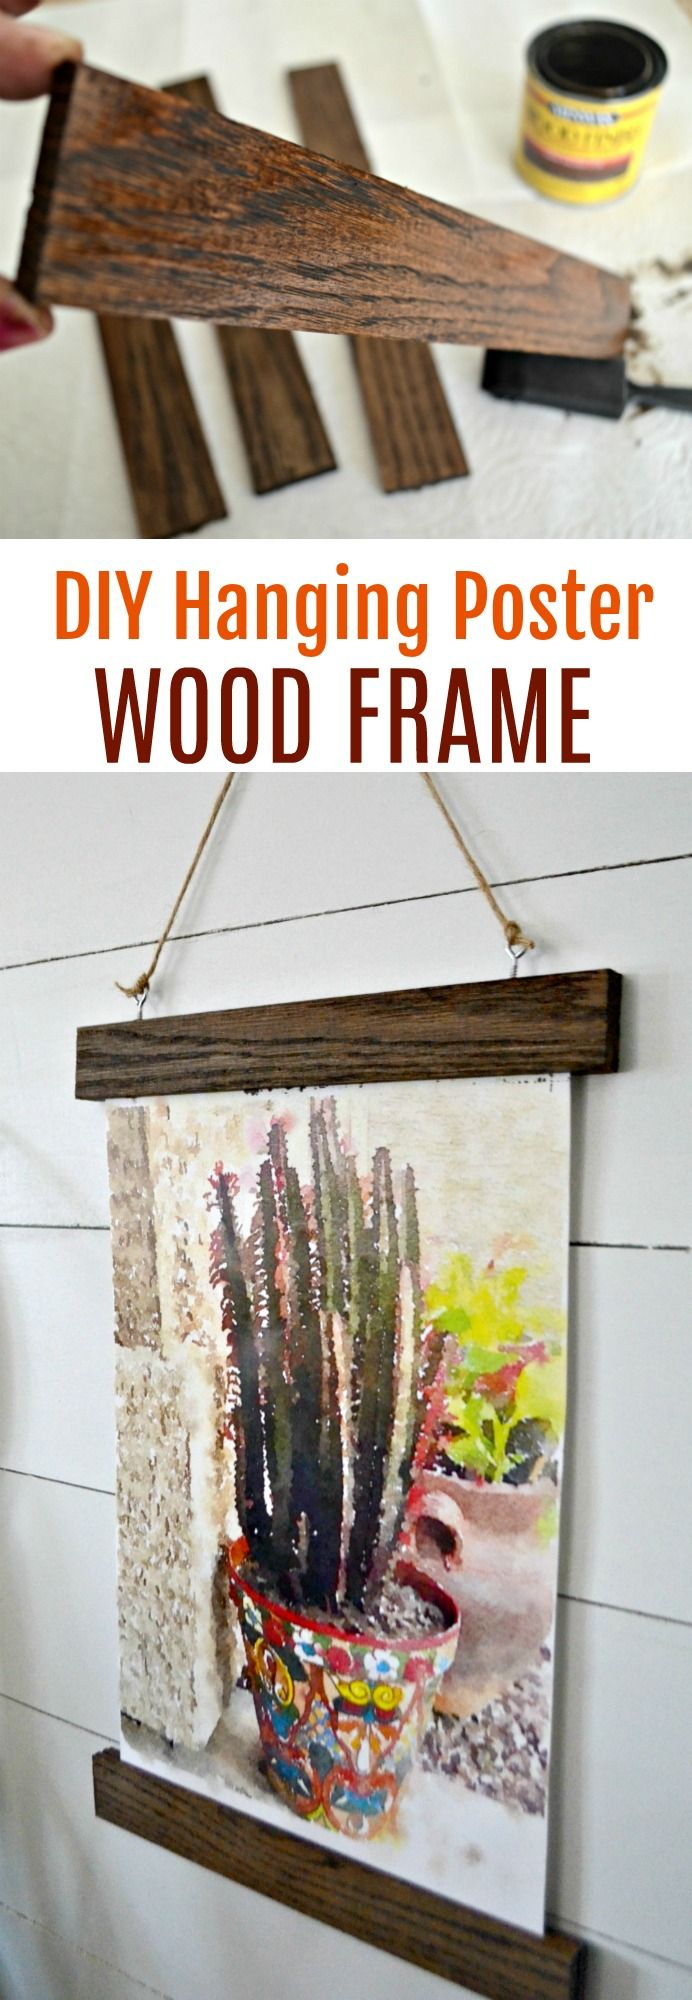 Hereus how to make your own diy midcentury modern inspired wall art